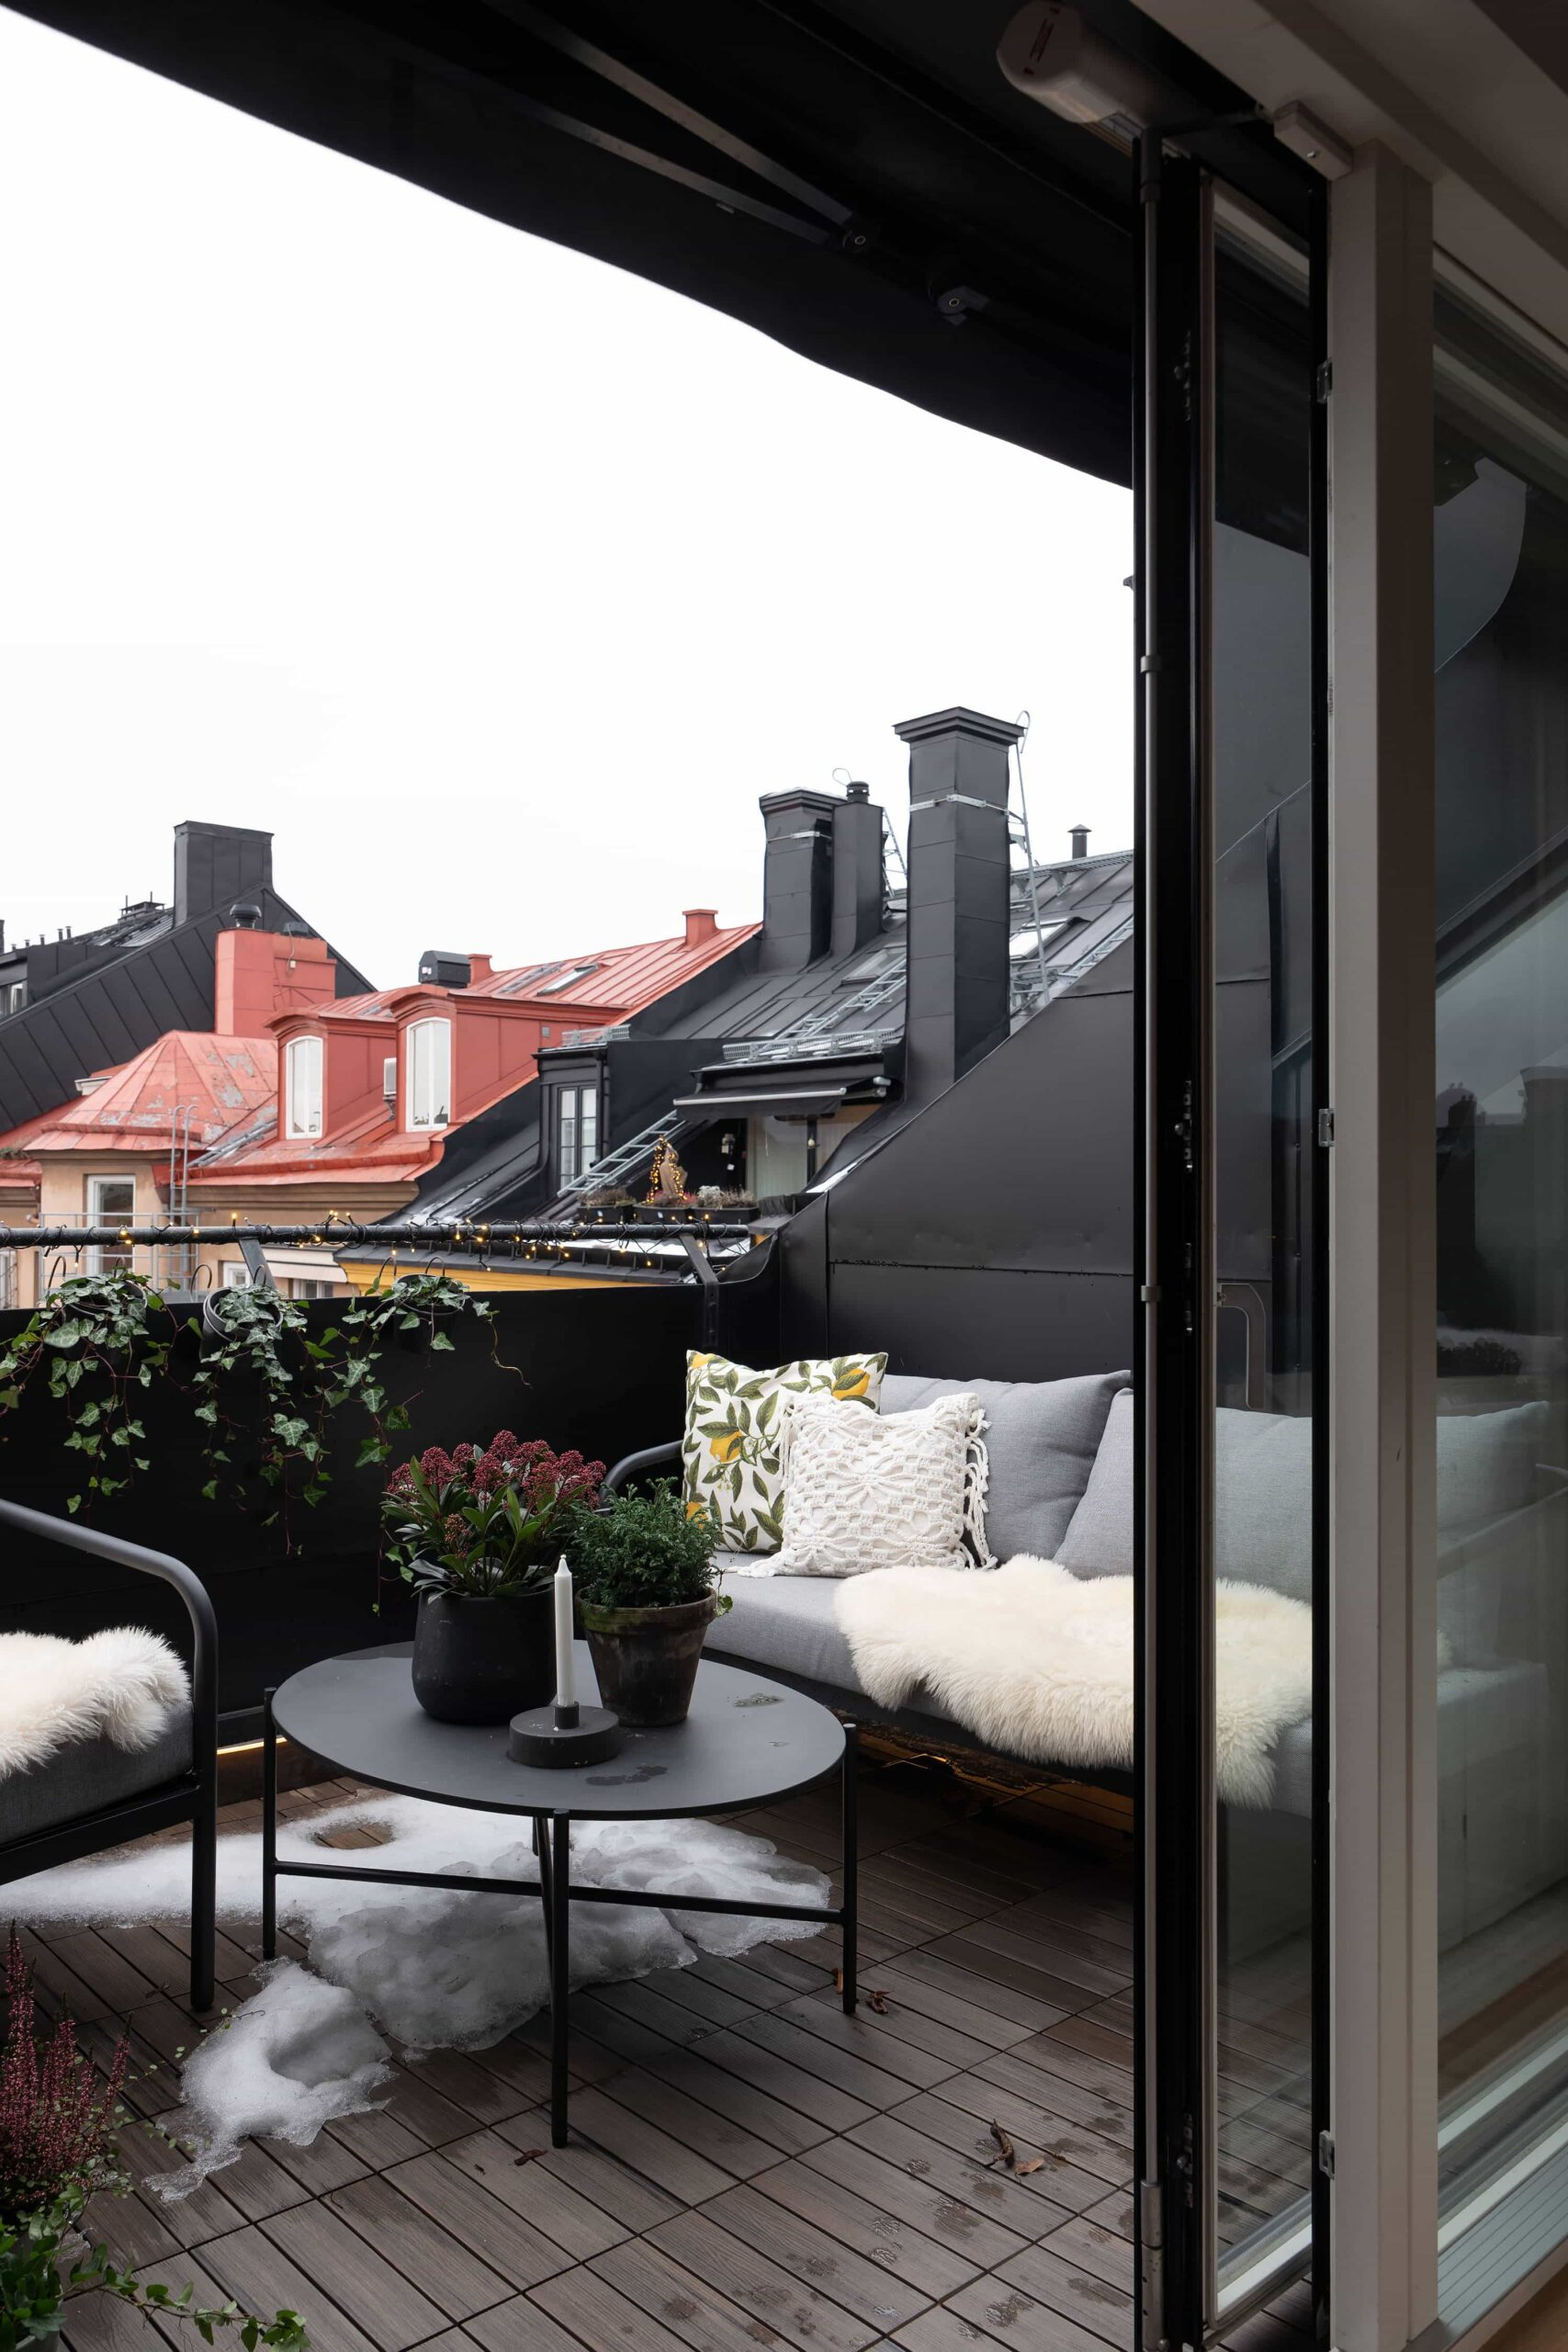 this is a cosy balcony in Scandinavia